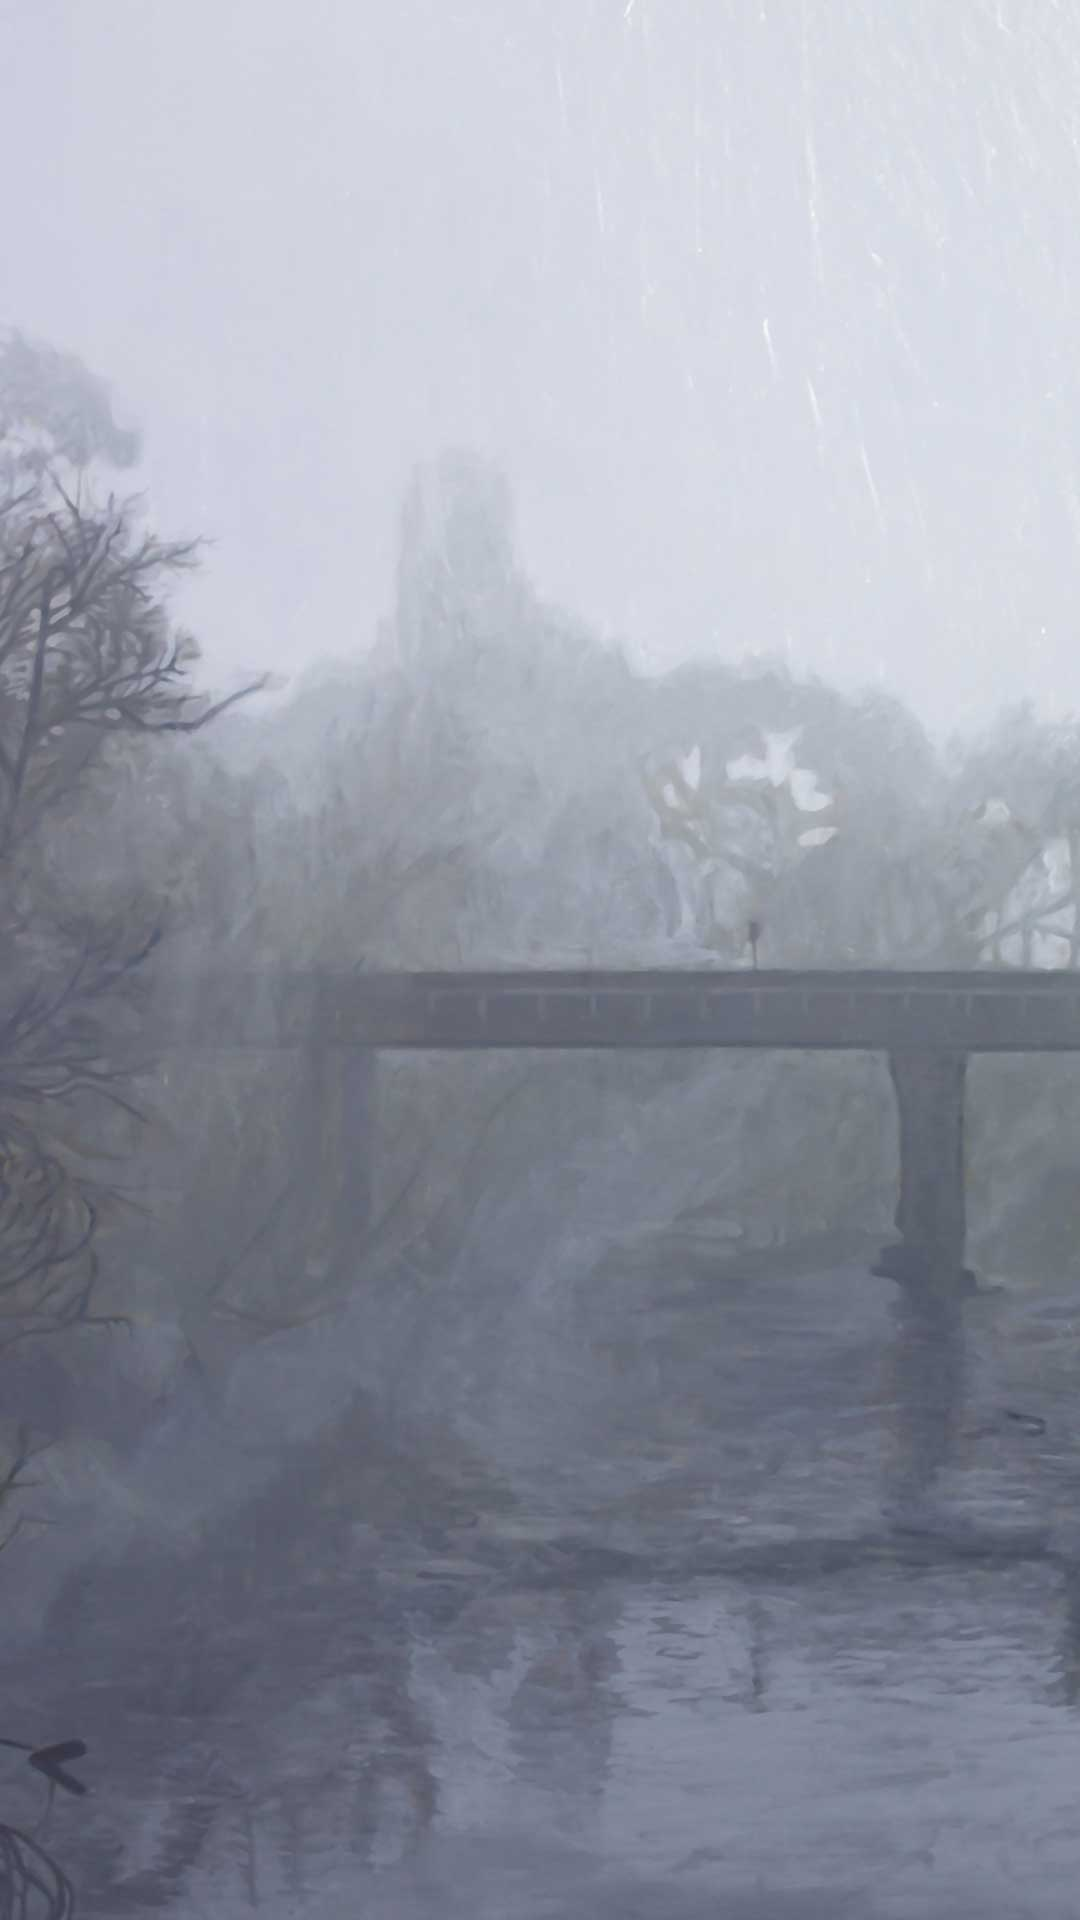 Photorealist painting - Fog at Yarra Glen - Detail 1